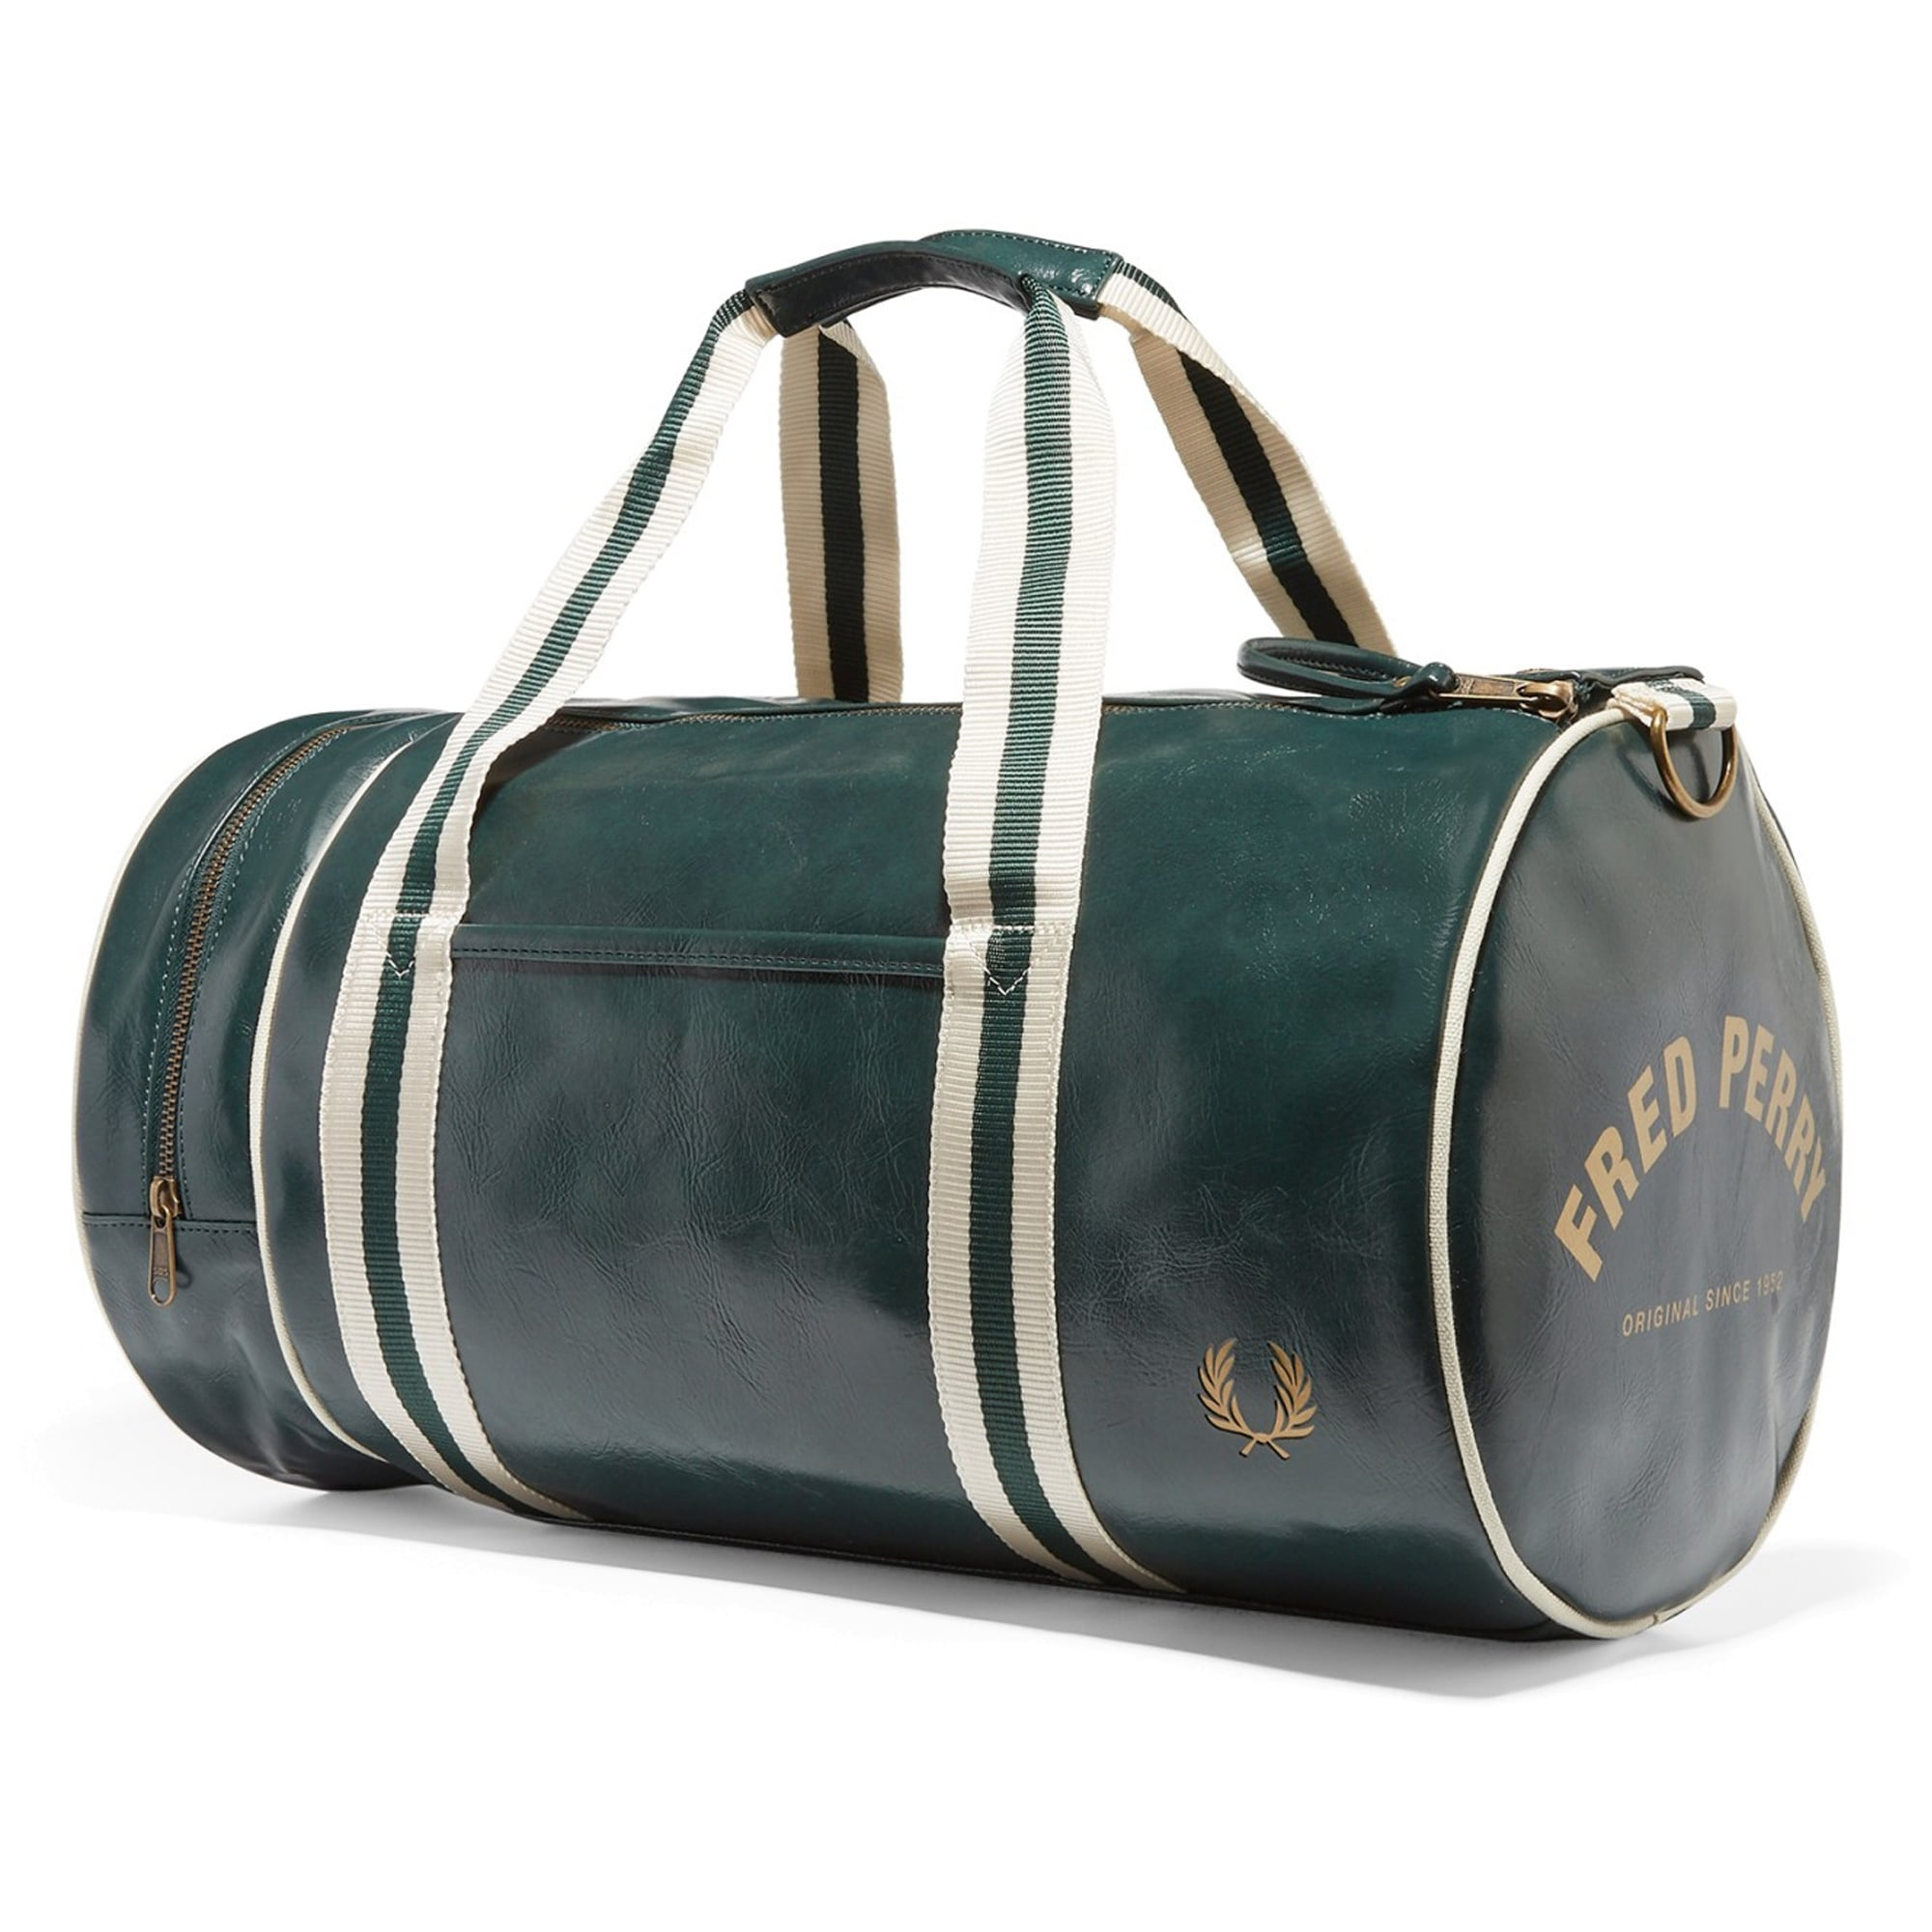 Fred Perry Weekend Bag in Ivy  8dce3542de3be